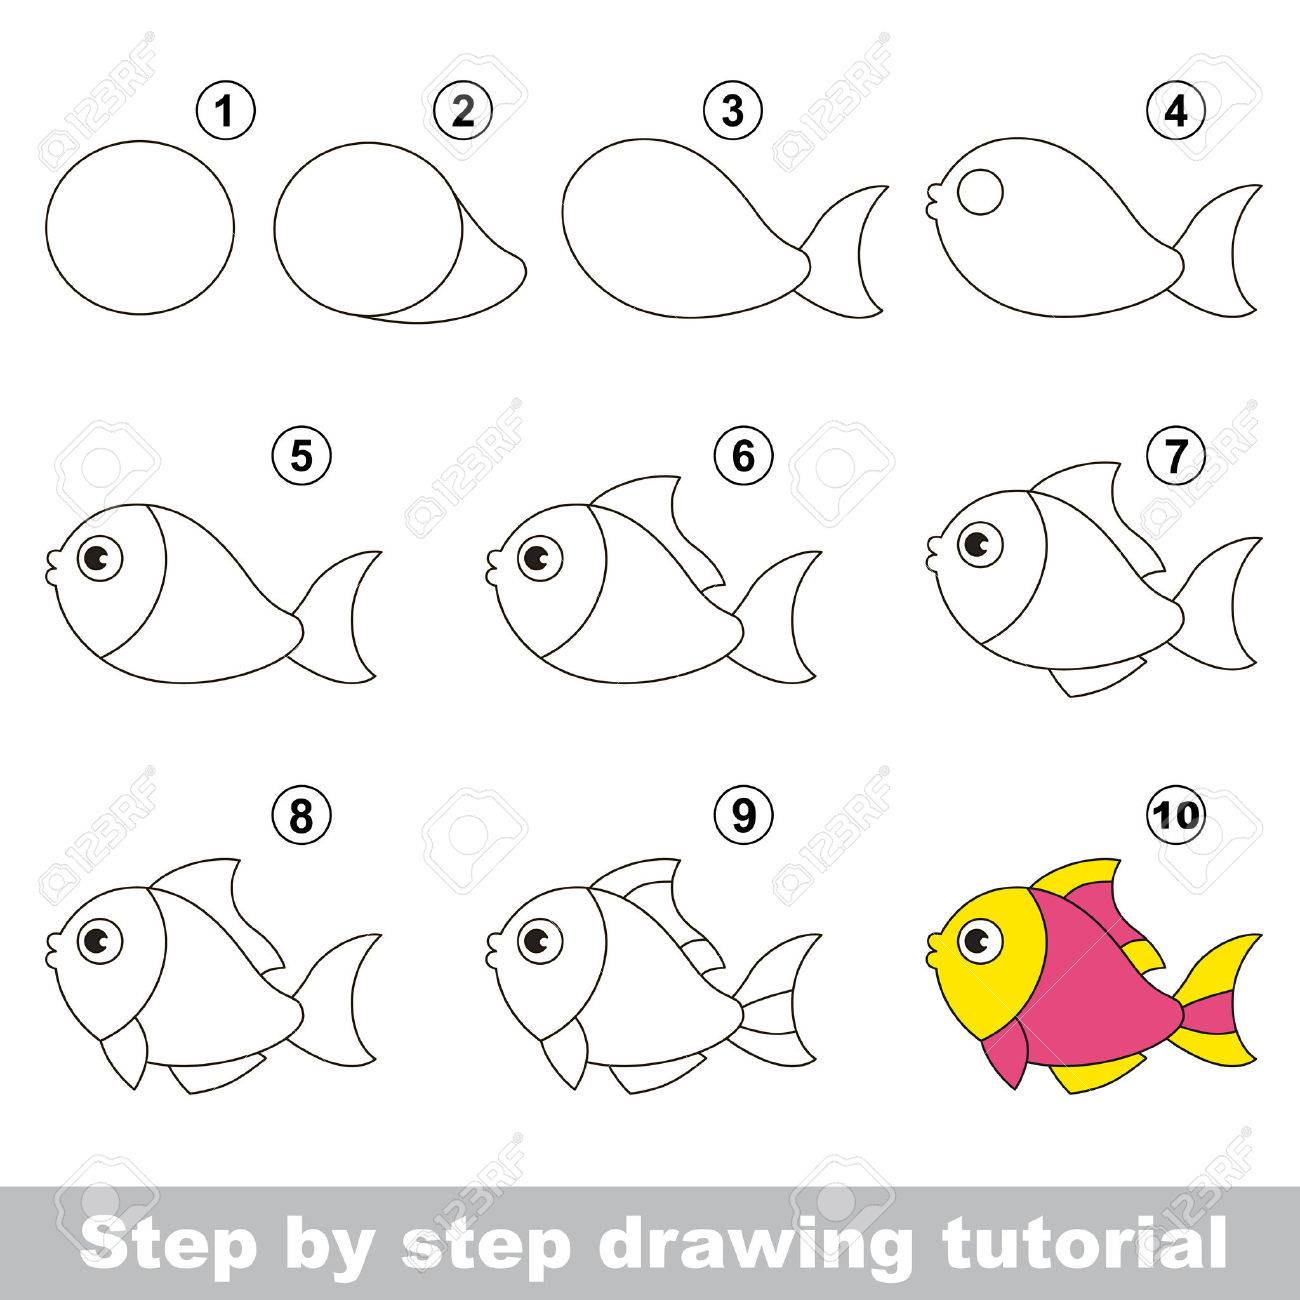 Funny Fish Step By Step Drawing Tutorial Royalty Free Cliparts Vectors And Stock Illustration Image 51150858